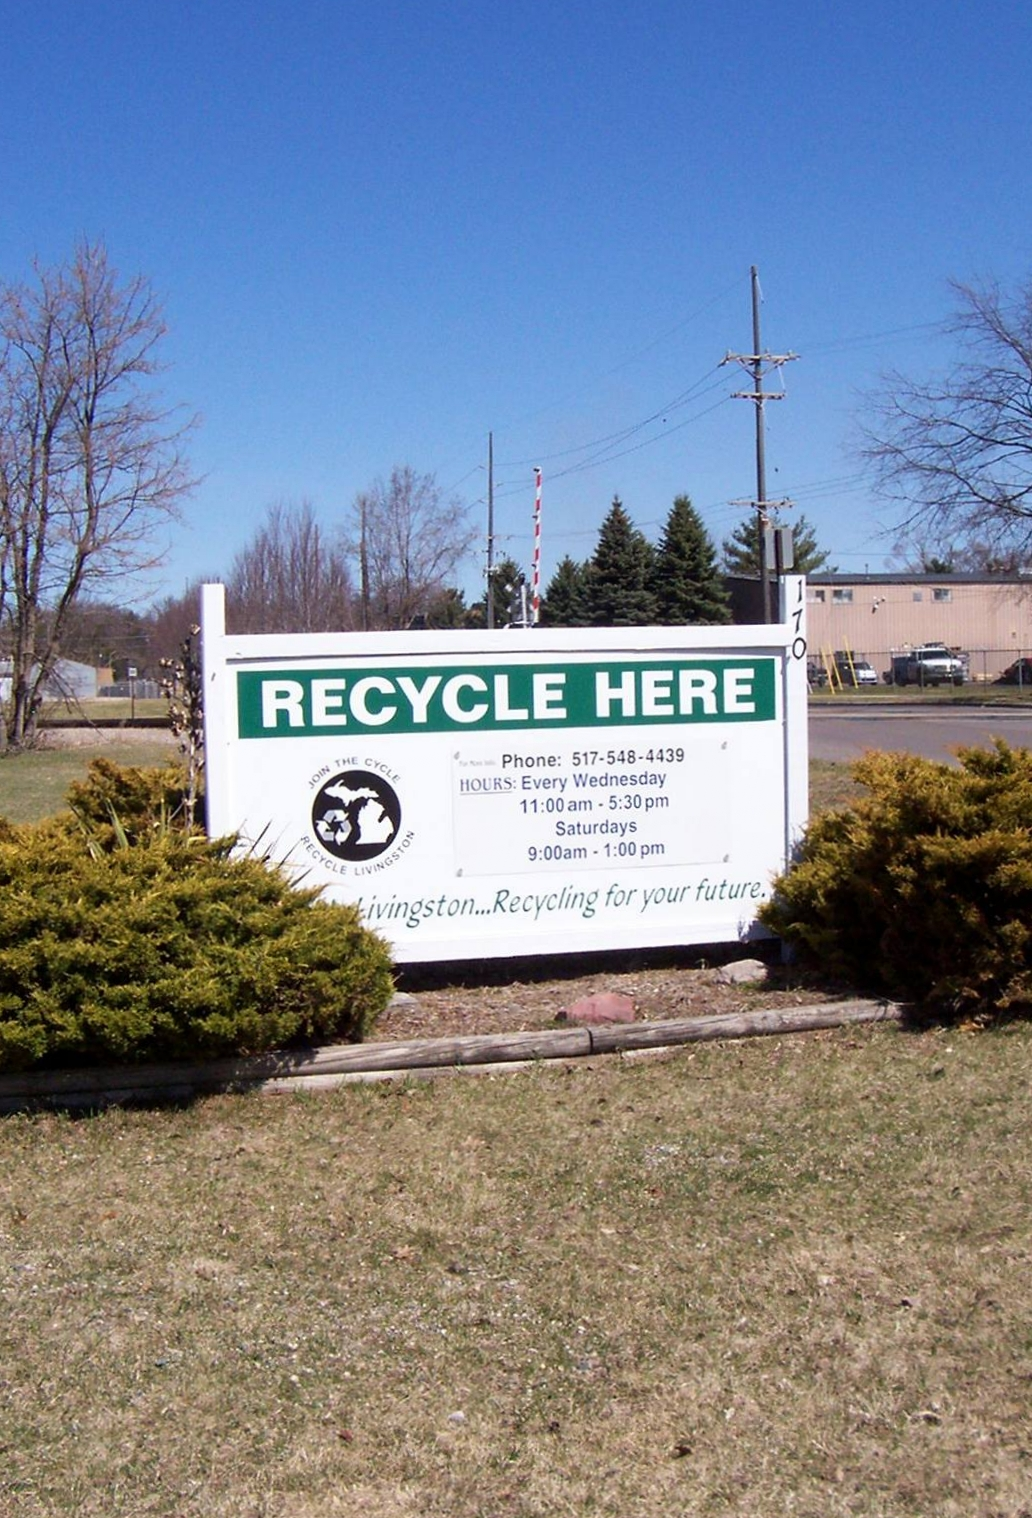 Recycle Livingston    The Kellogg Family Foundation has partnered with Recycle Livingston in support of their mission to promote recycling and waste reduction in Livingston County.